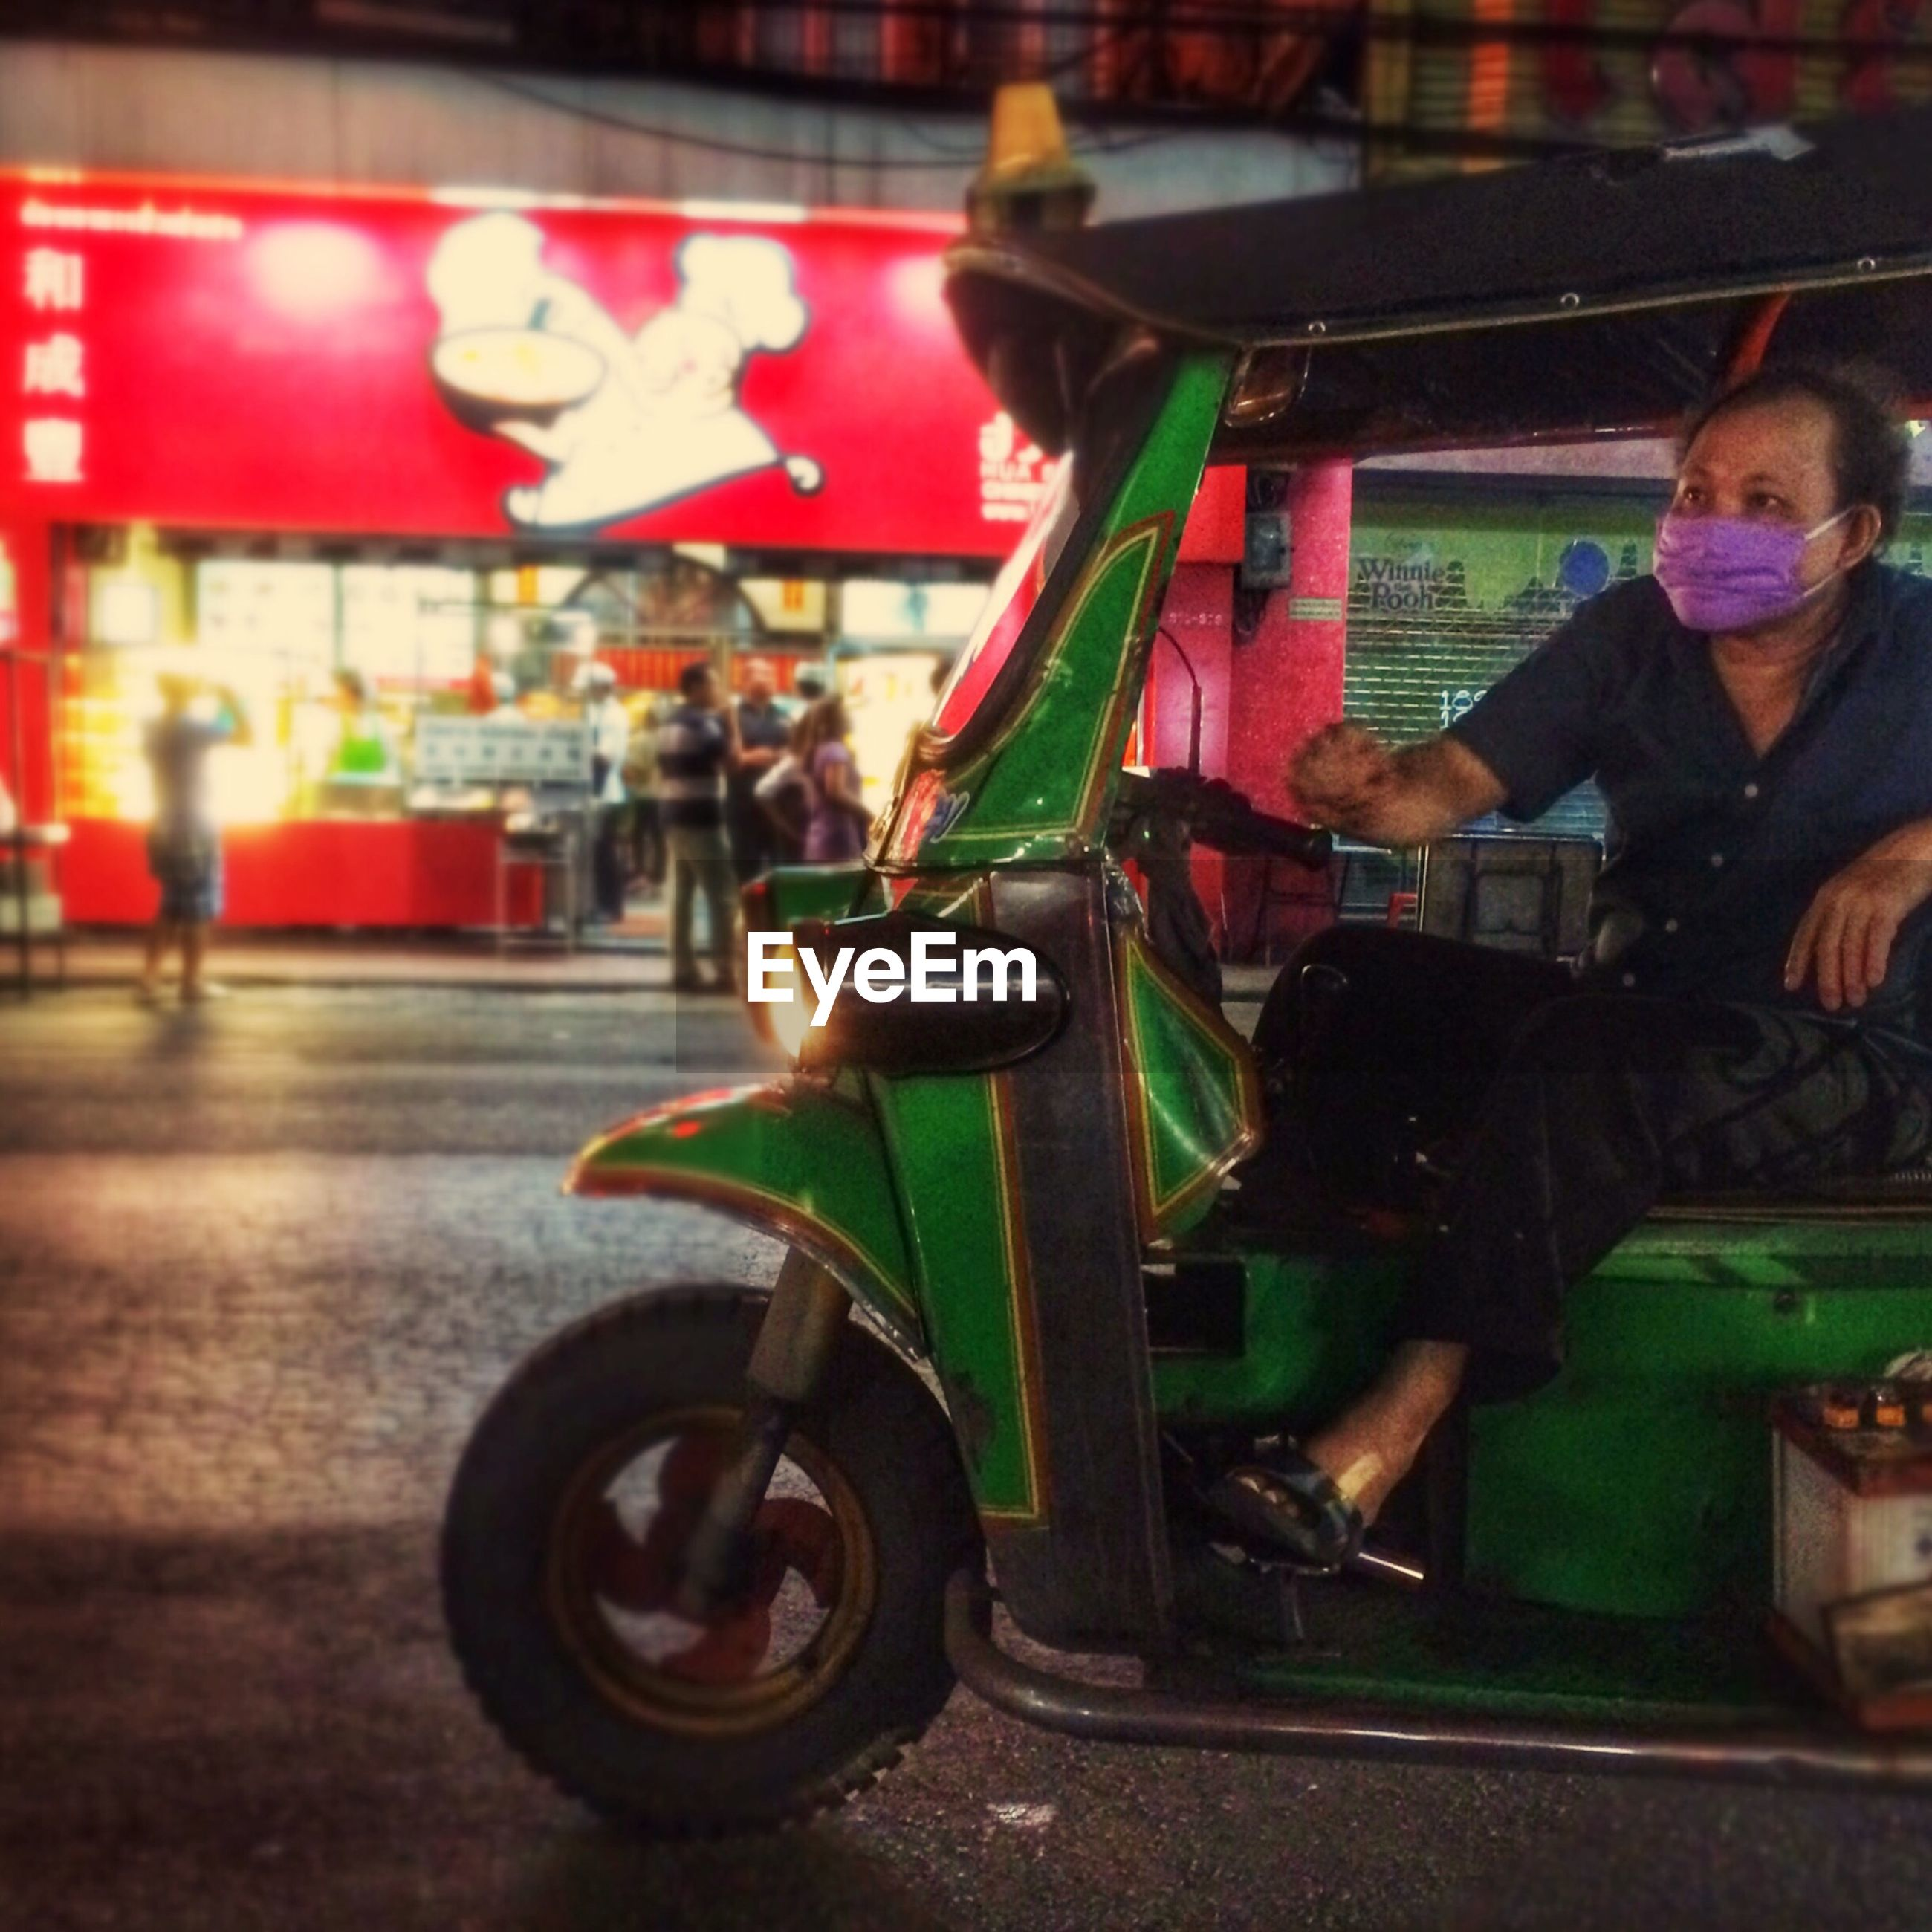 indoors, lifestyles, childhood, leisure activity, incidental people, land vehicle, men, street, focus on foreground, toy, transportation, mode of transport, selective focus, sitting, arts culture and entertainment, person, red, side view